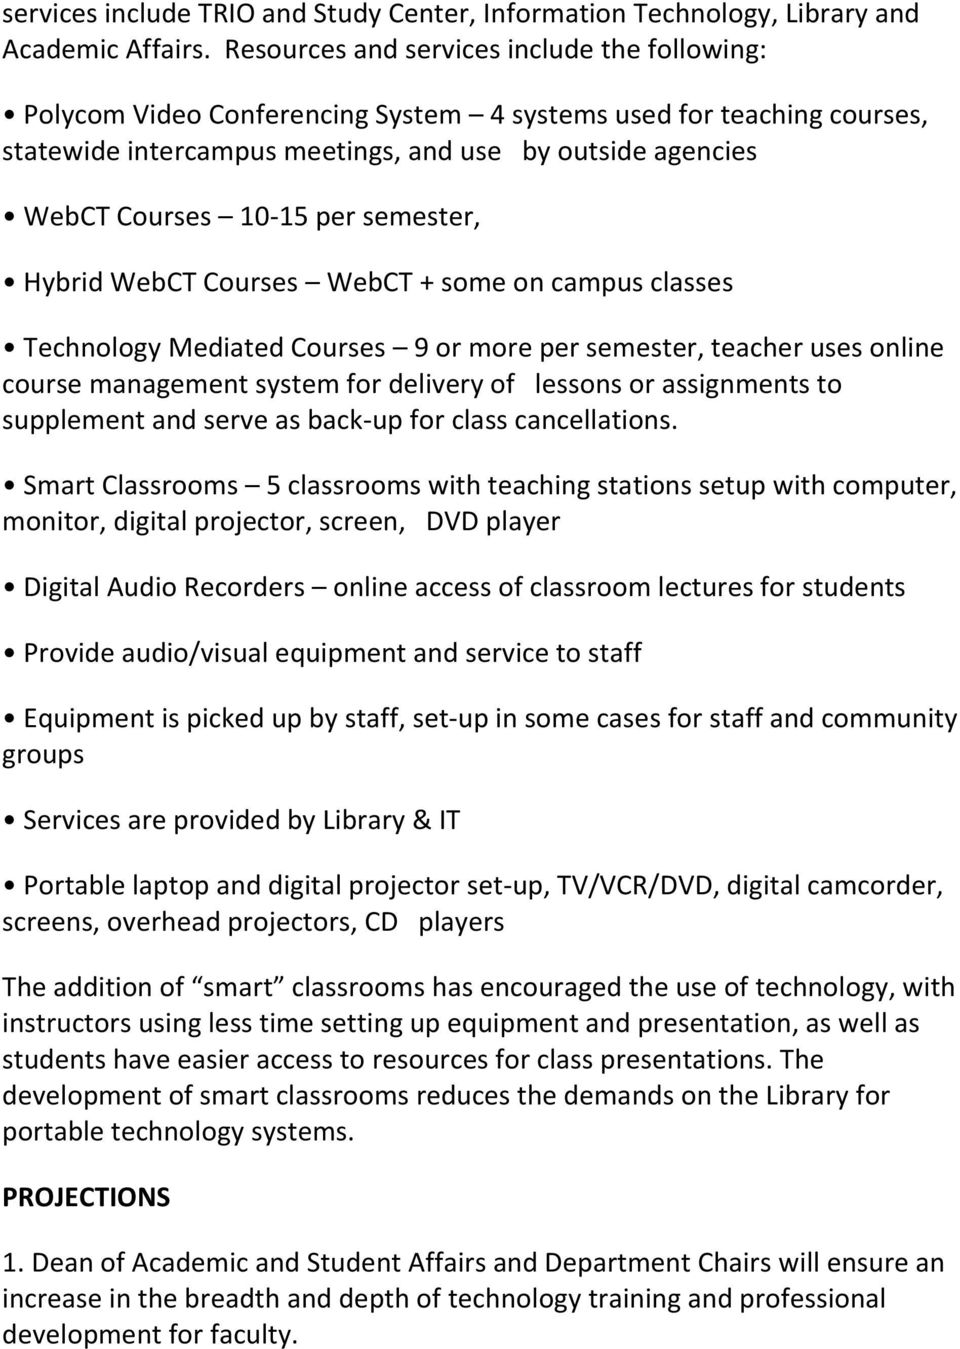 per semester, Hybrid WebCT Courses WebCT + some on campus classes Technology Mediated Courses 9 or more per semester, teacher uses online course management system for delivery of lessons or